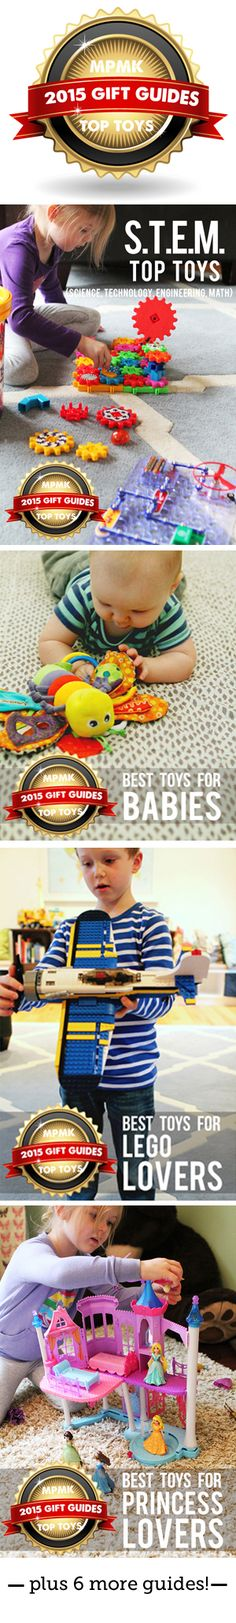 300+ Stimulating & Engaging Toys Arranged by Age & Interest How great would it be to get all of your Christmas shopping done ahead of time this year AND to feel confident your kids are going to love their gifts and keep returning to play with them again and again? This is the only …